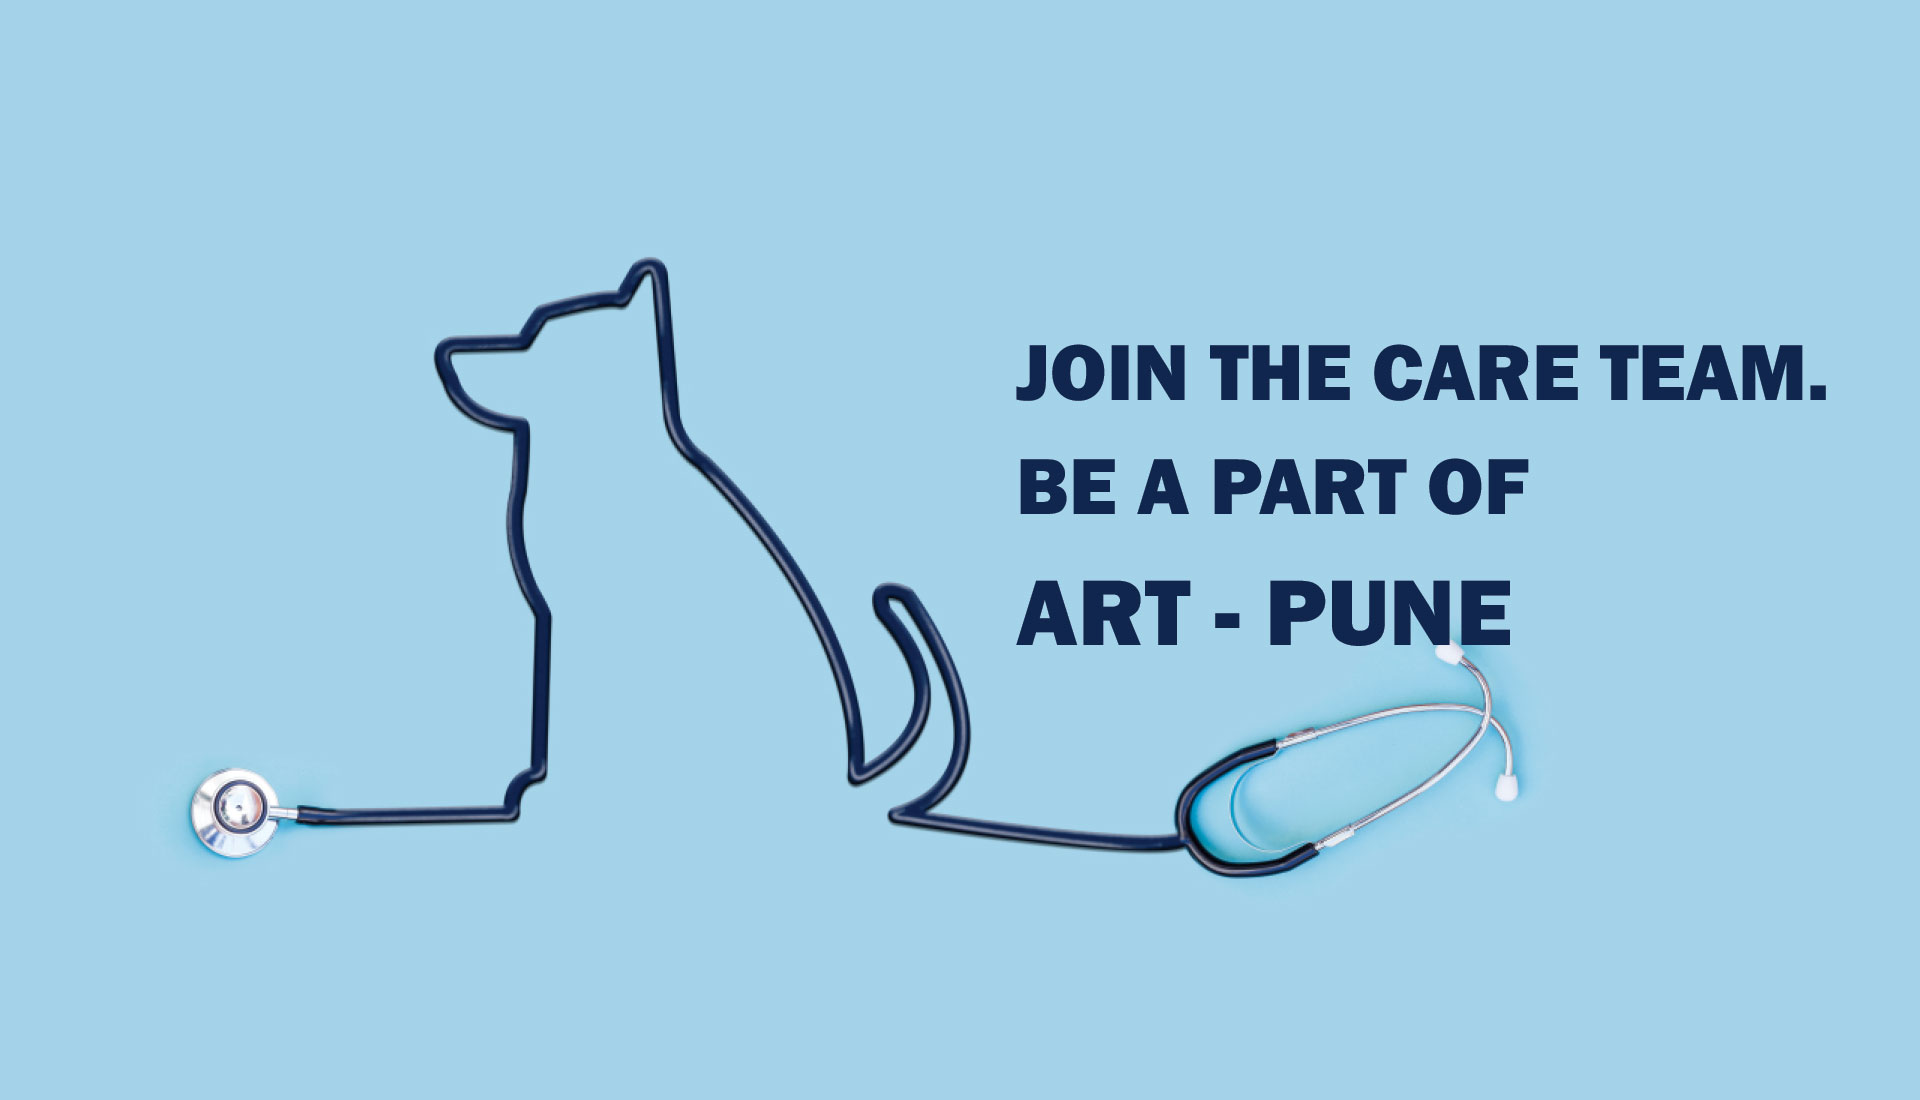 Join the care team. Be a part or ART-Pune